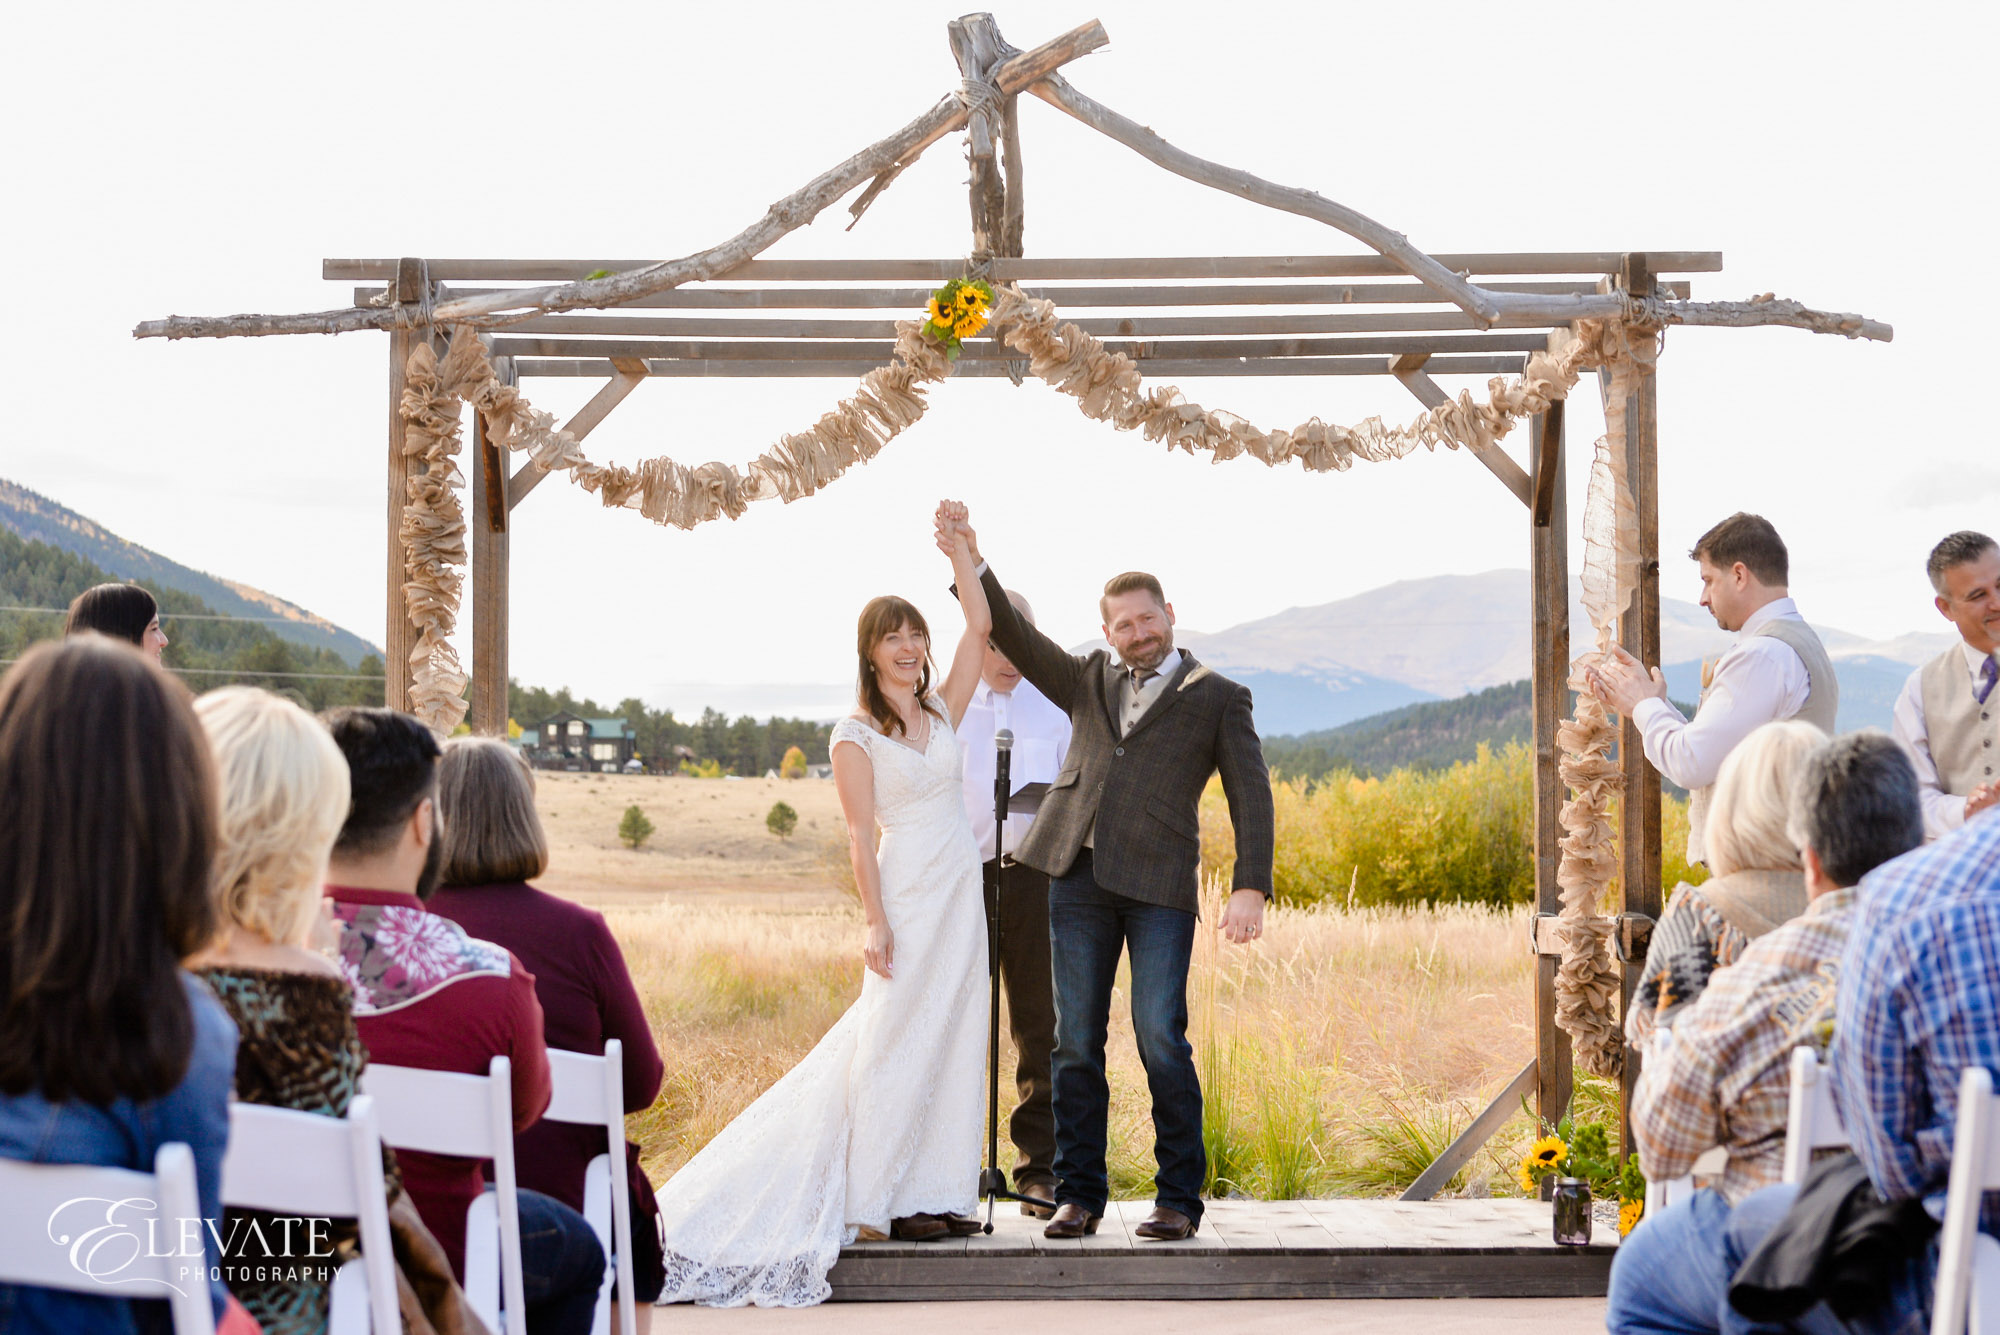 Wedding ceremony in mountains